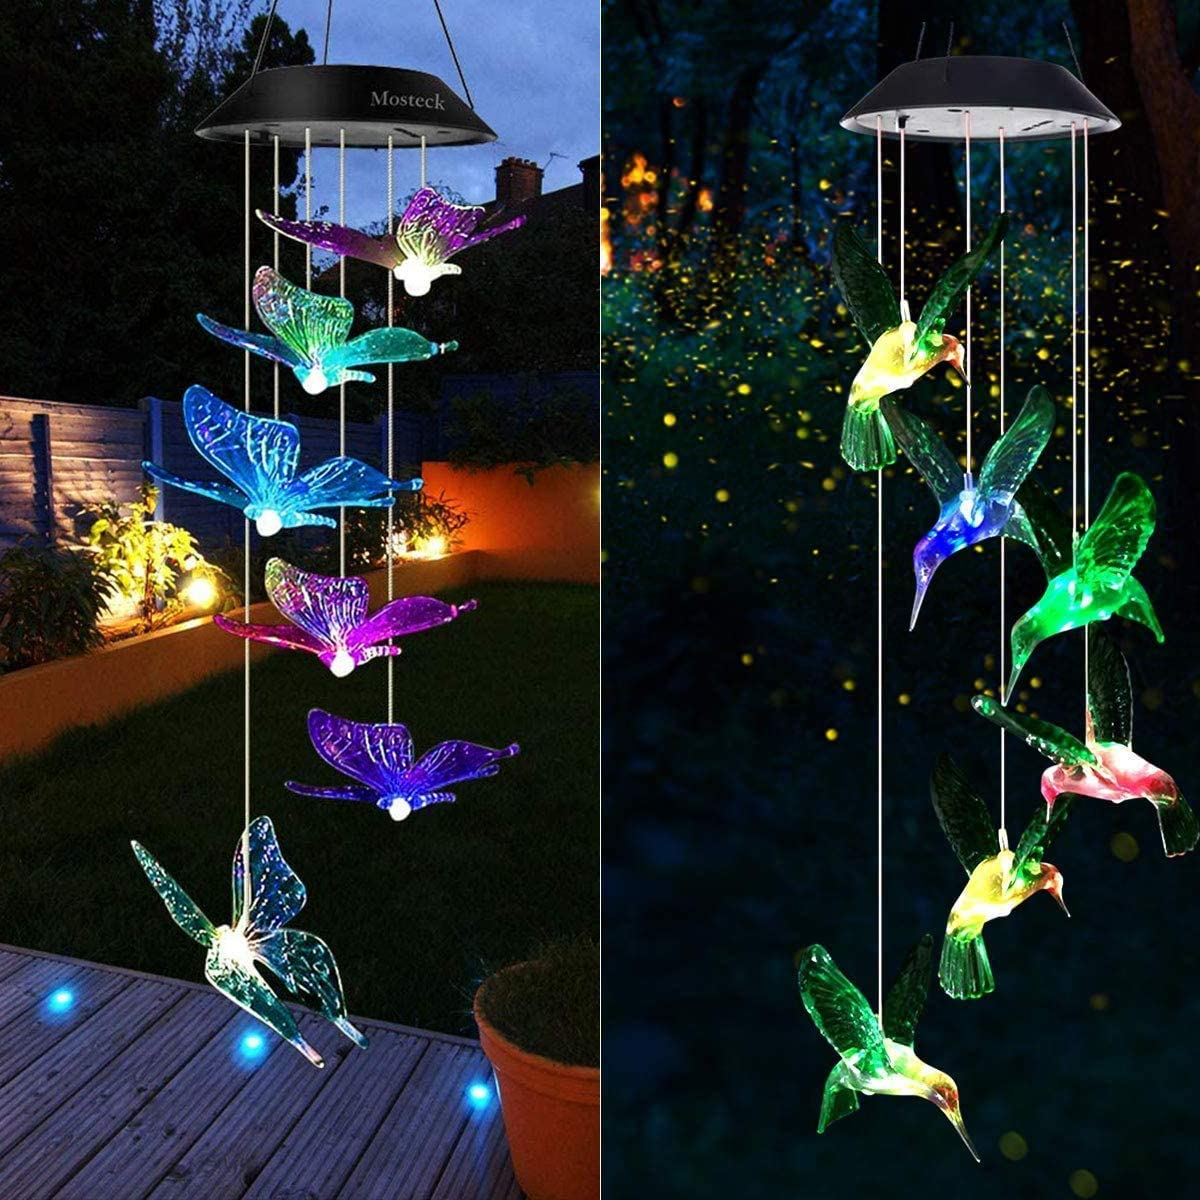 Mosteck Wind Chimes Outdoor Solar, Butterfly Wind Chimes & Hummingbird Wind Chimes Color Changing Lights Mobile Wind Chime